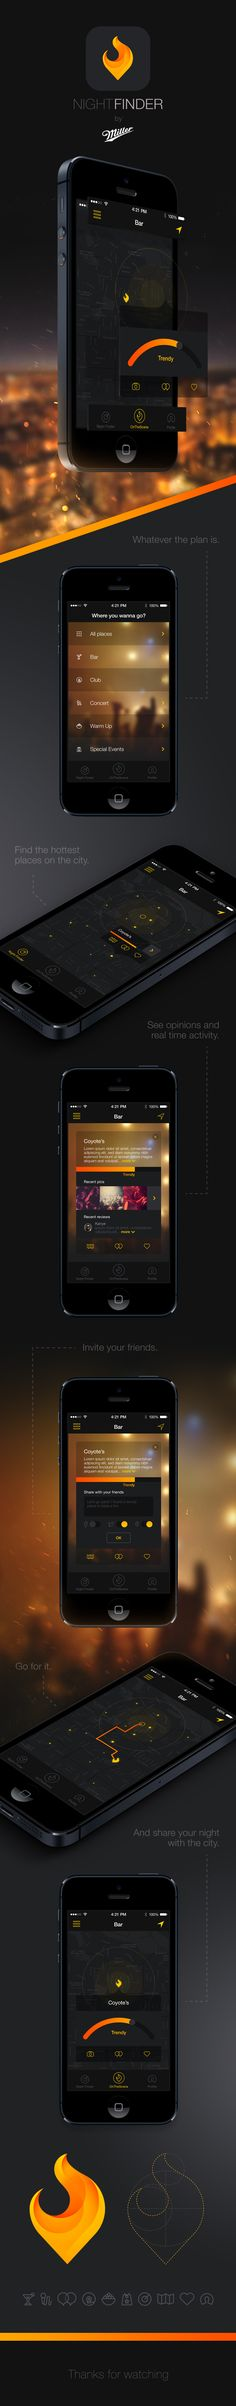 Night Finder App iOS 7 redesign exercise of a project I participated last year for Miller Genuine Draft (MGD). With the Night Finder you can discover the. Web Design, Flat Design, Design Layouts, Store Design, Gui Interface, User Interface Design, Apps, Ui Web, Responsive Web